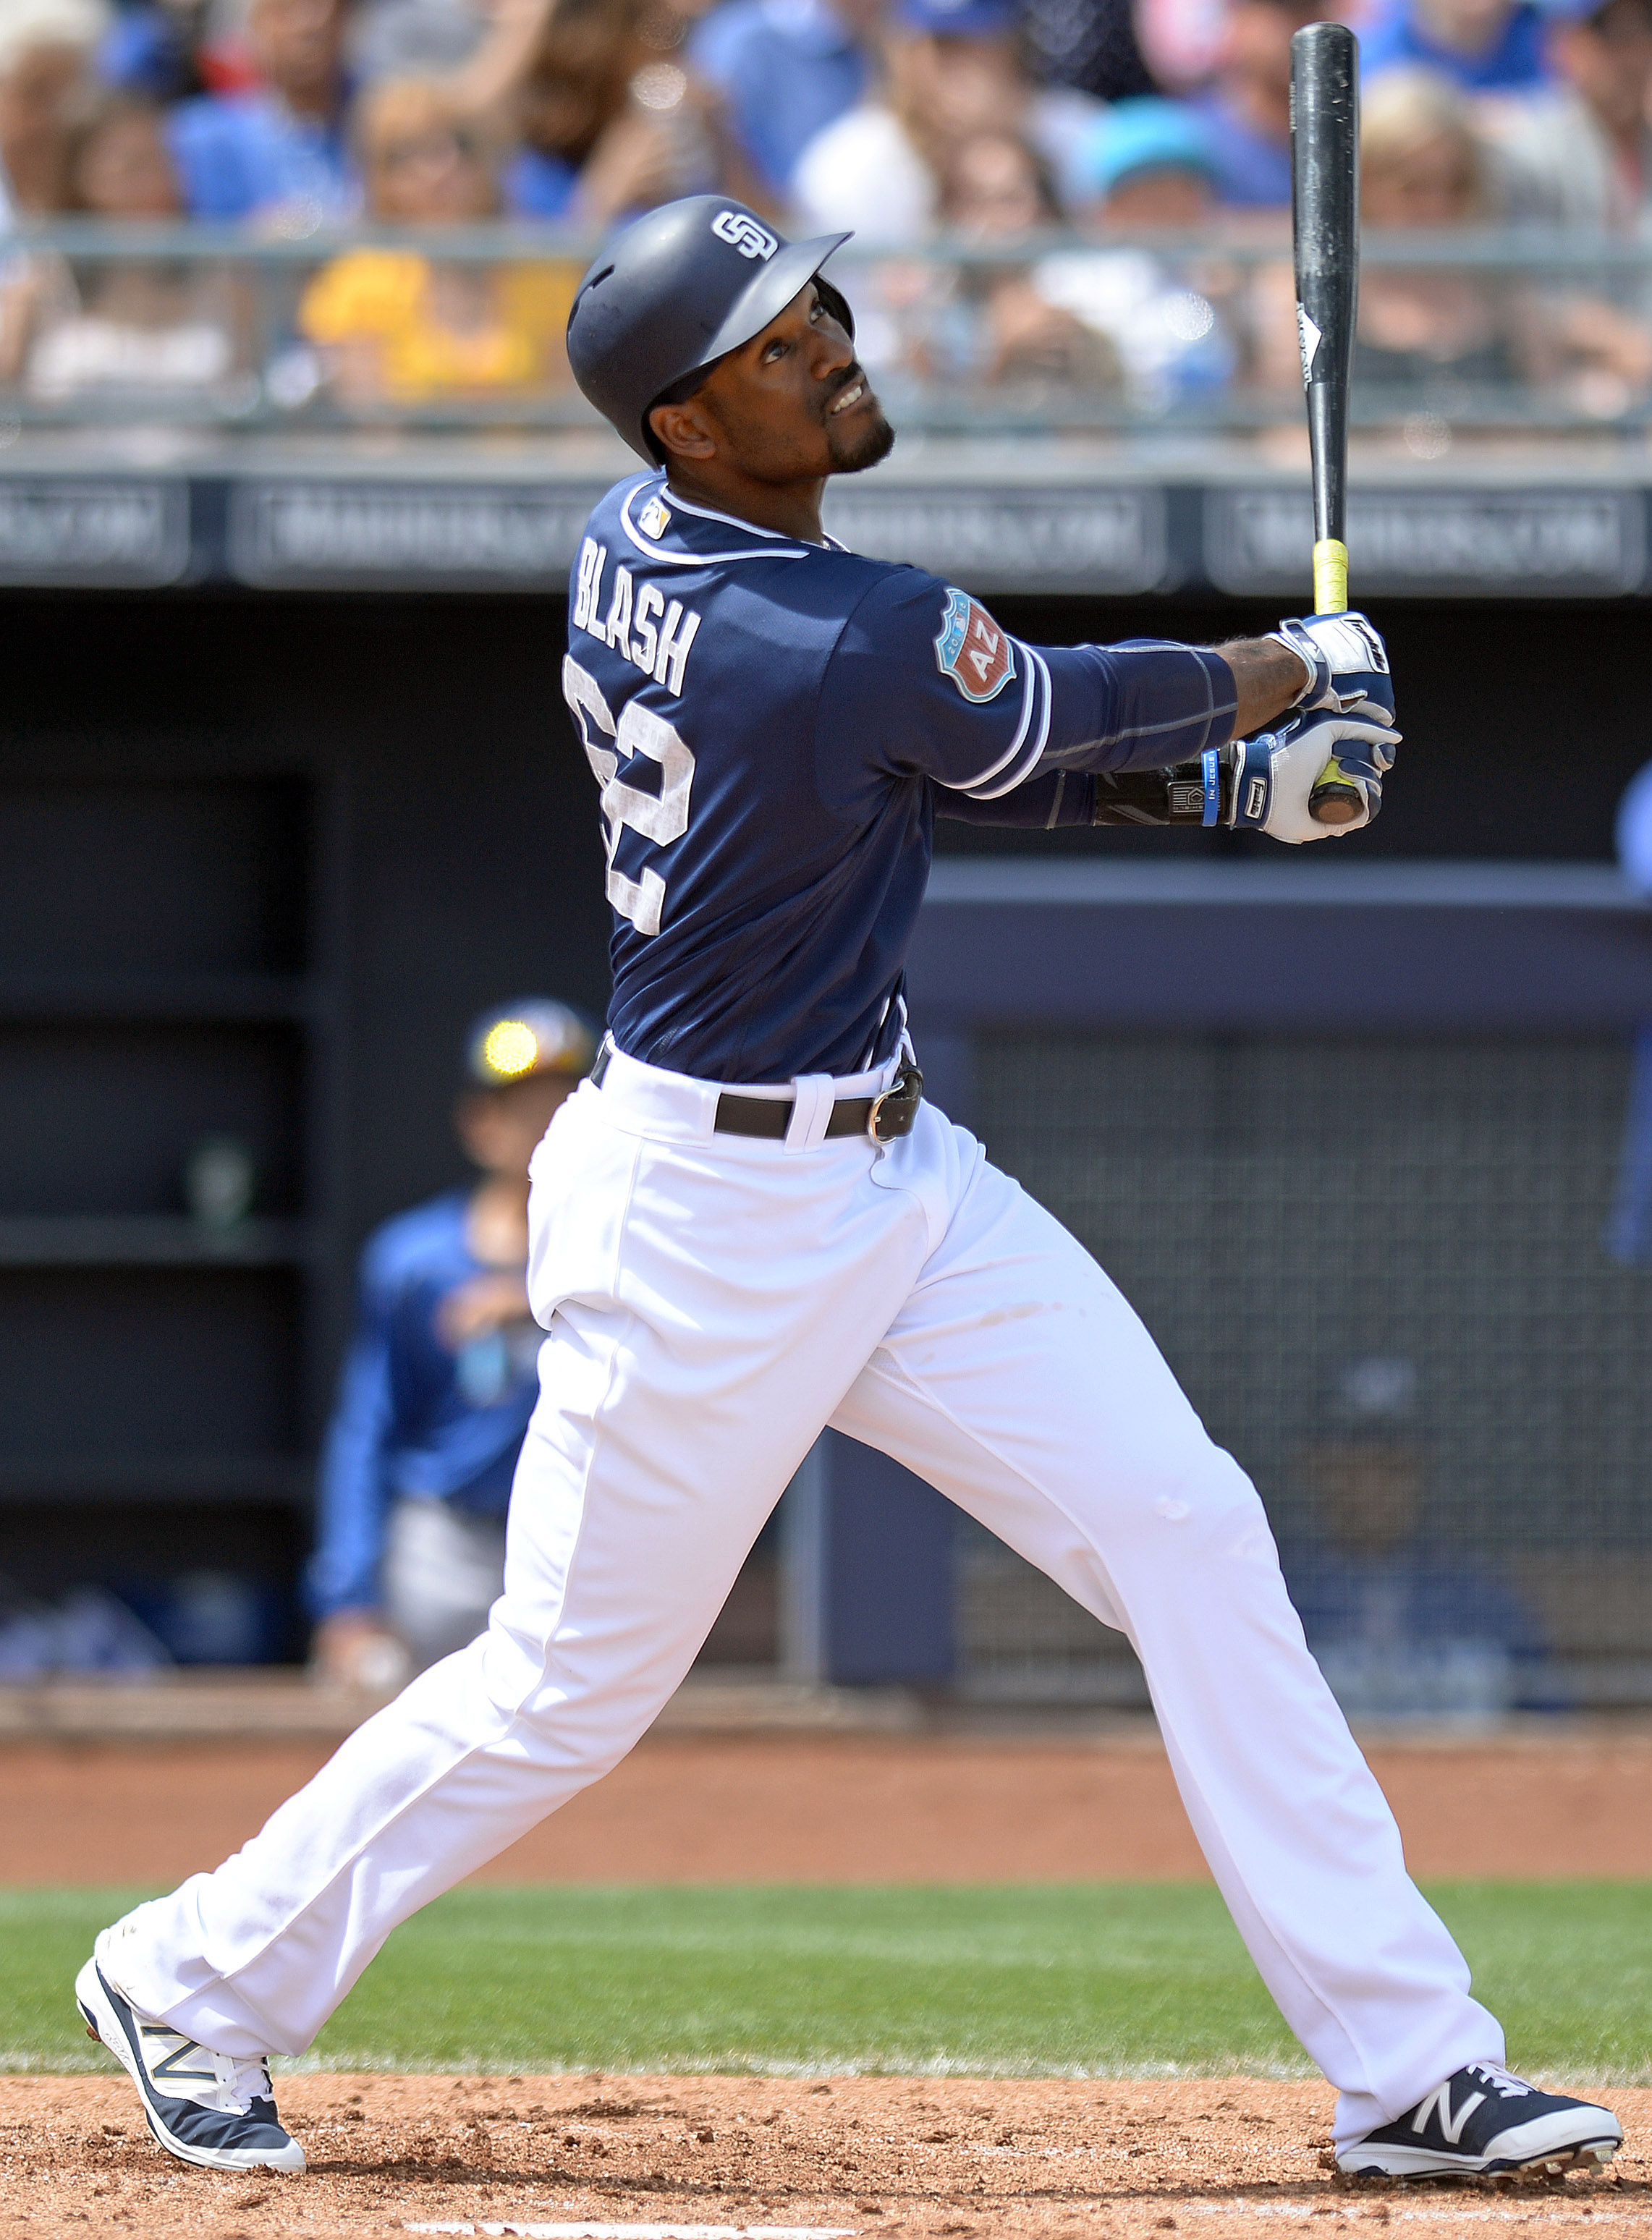 9217849-mlb-spring-training-los-angeles-dodgers-at-san-diego-padres